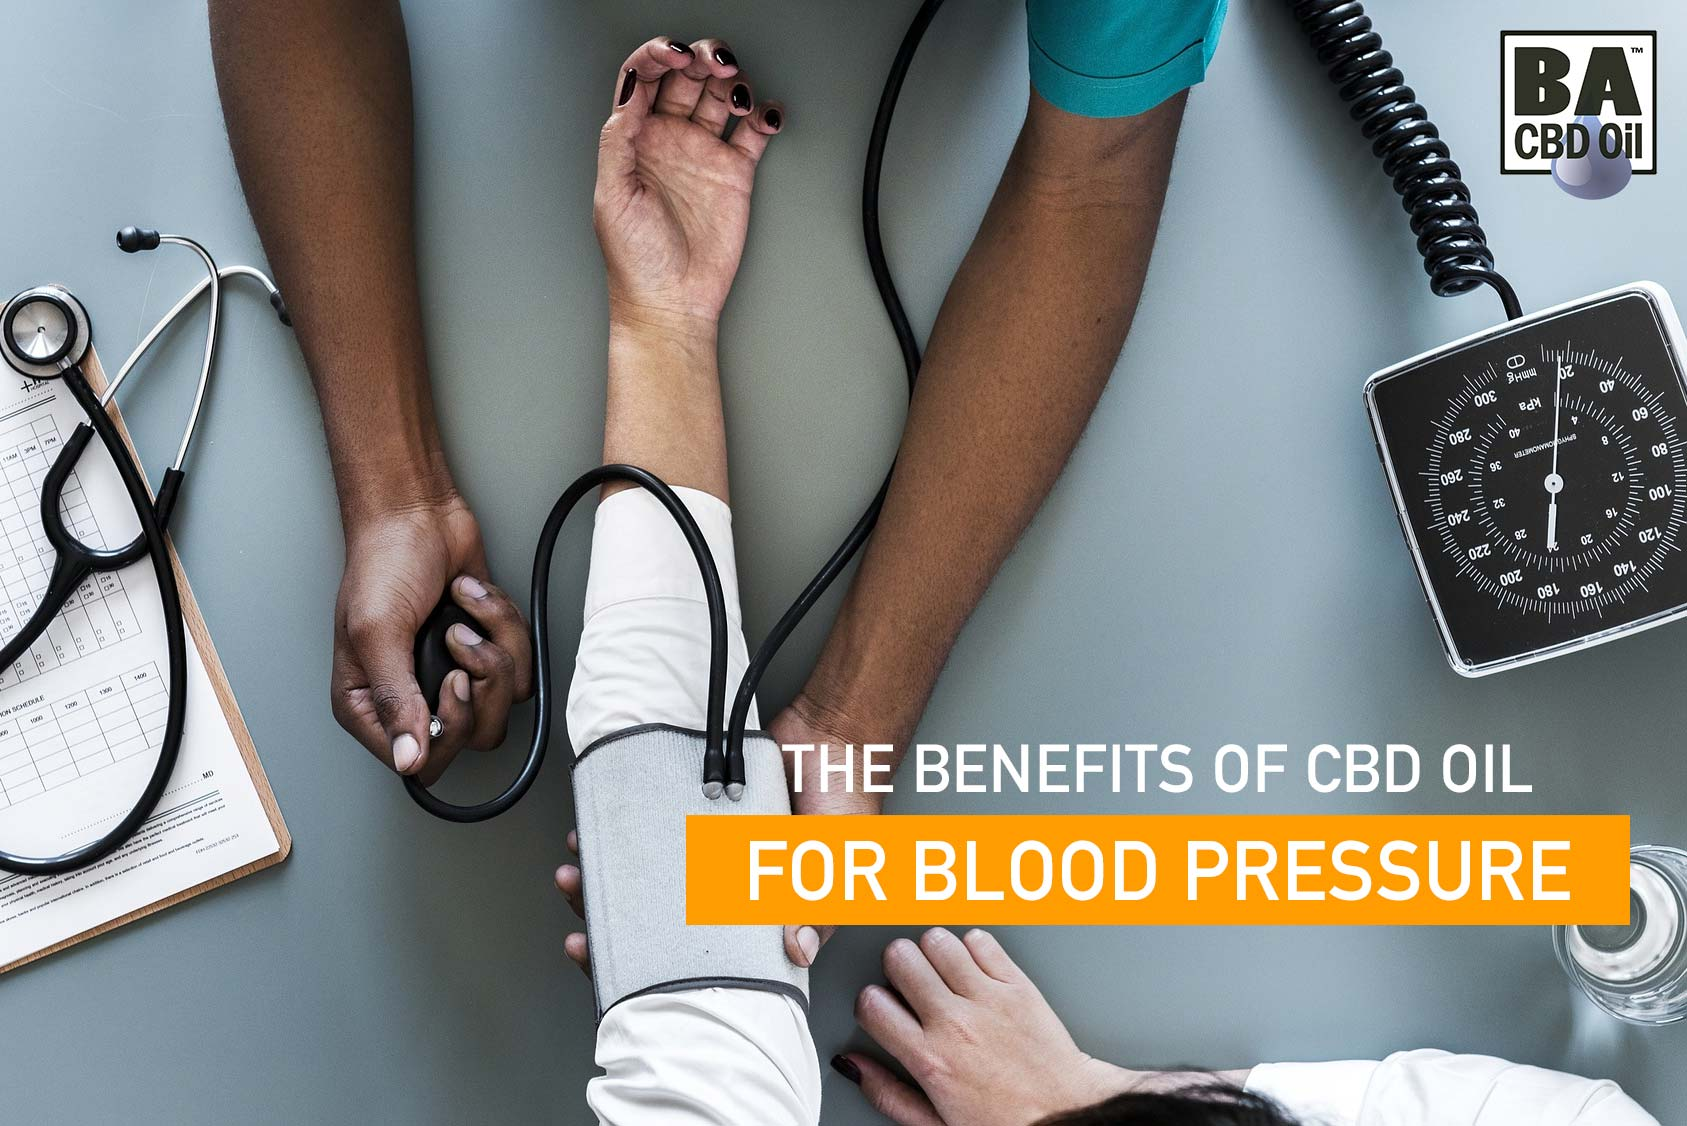 Benefits Of CBD Oil For Blood Pressure